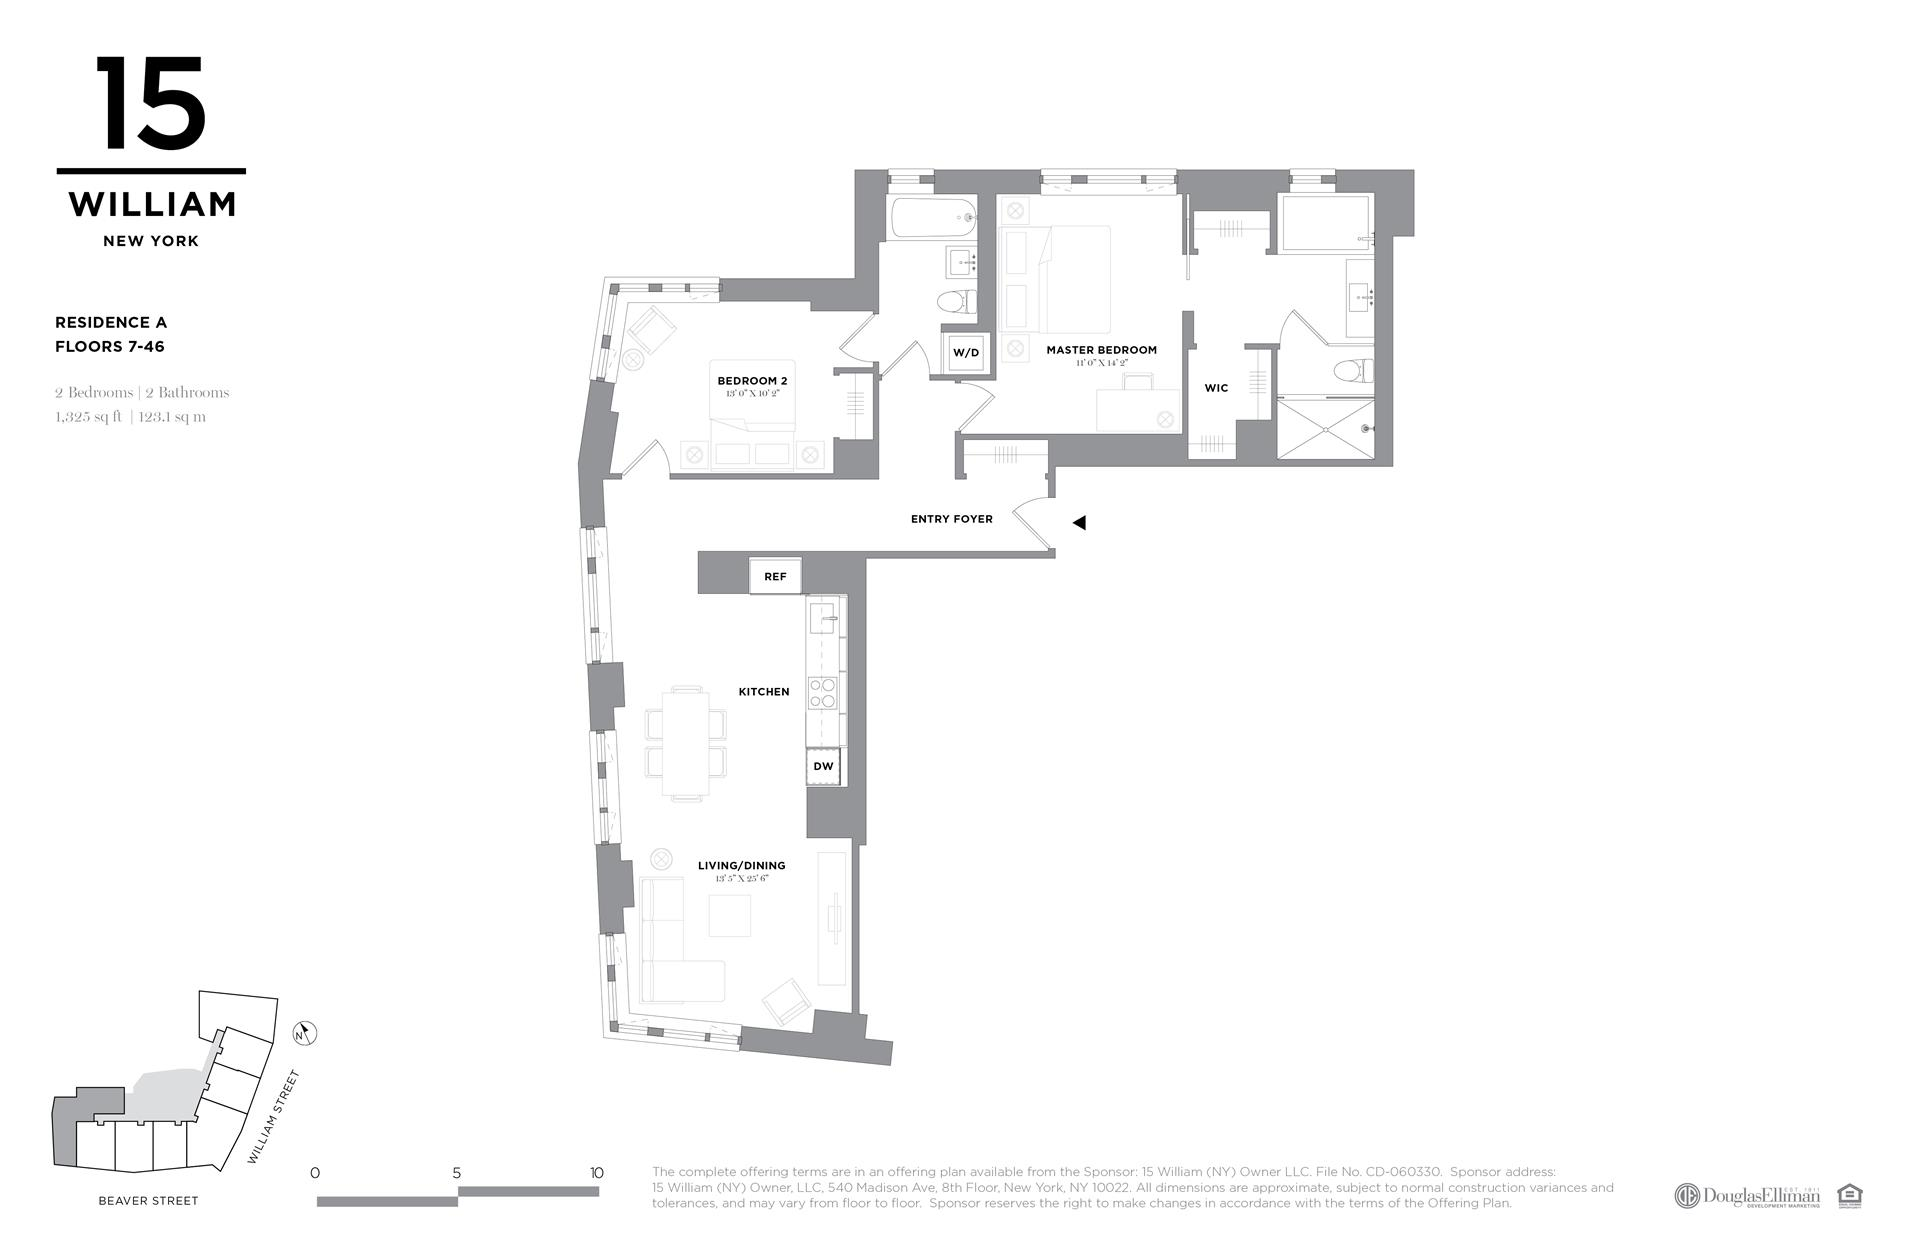 Floor plan of 15 William, 15 William St, 8A - Financial District, New York